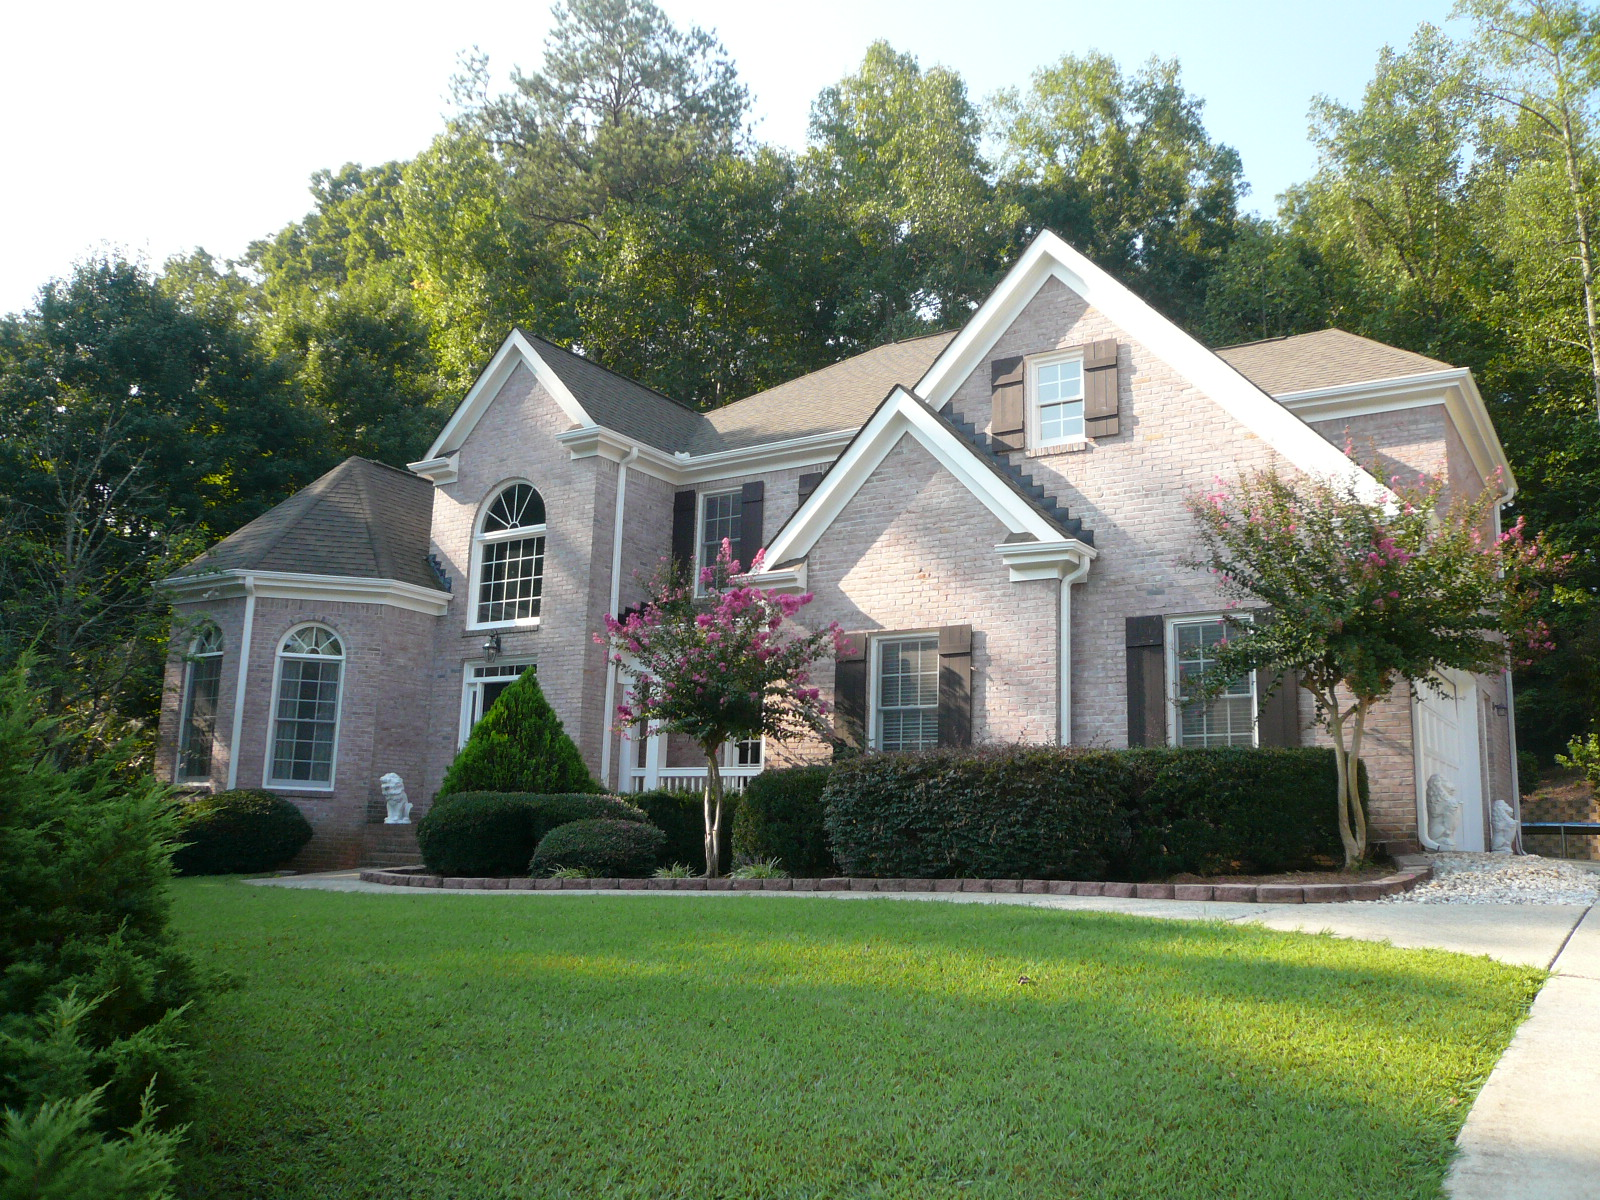 5 BR/ 4.5 Bath Single Family House in Johns Creek